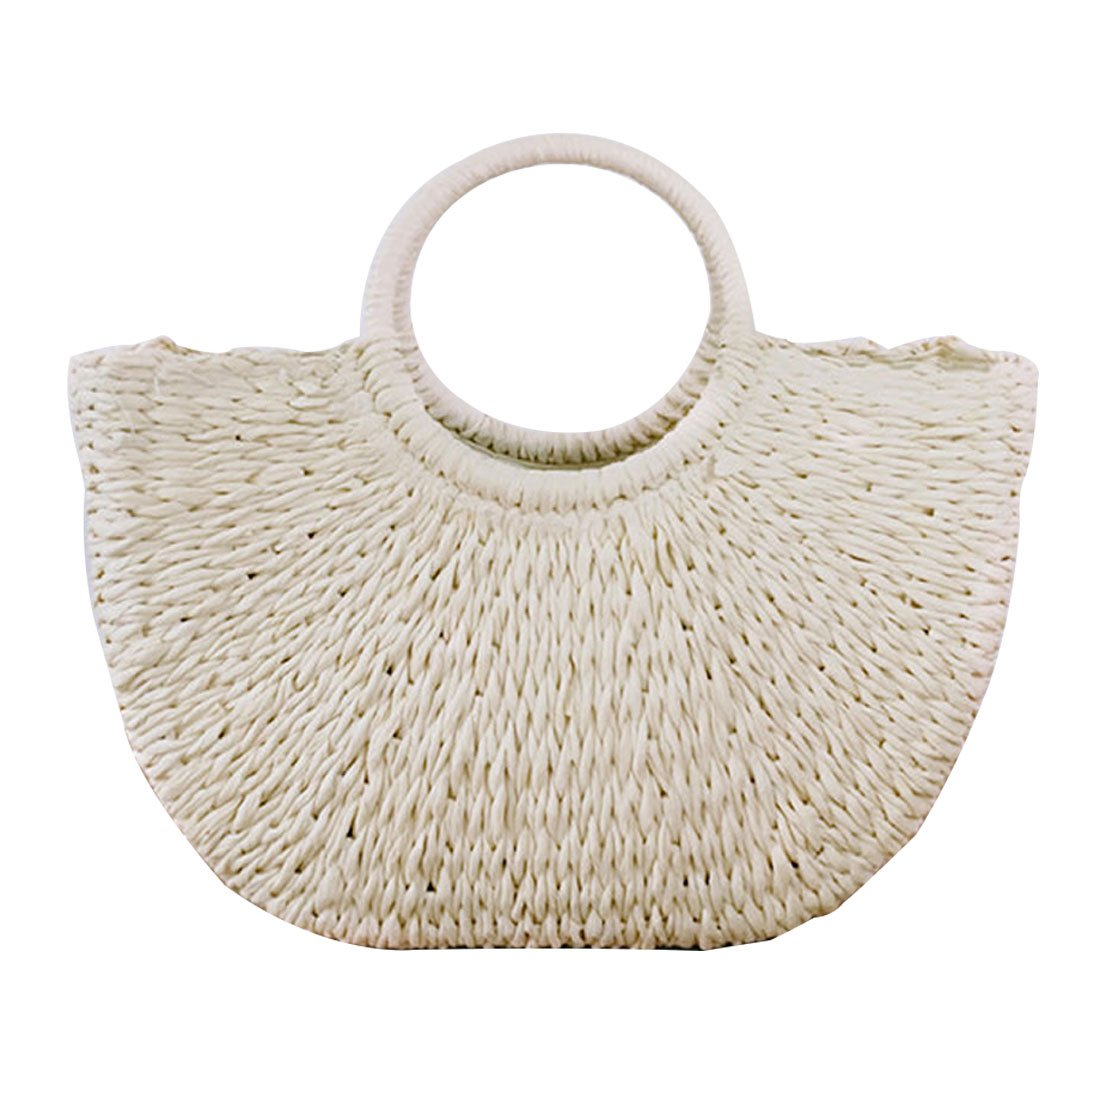 Hand-woven Straw Large Hobo Bag for Women Round Handle Ring Toto Retro Summer Beach (Off white)